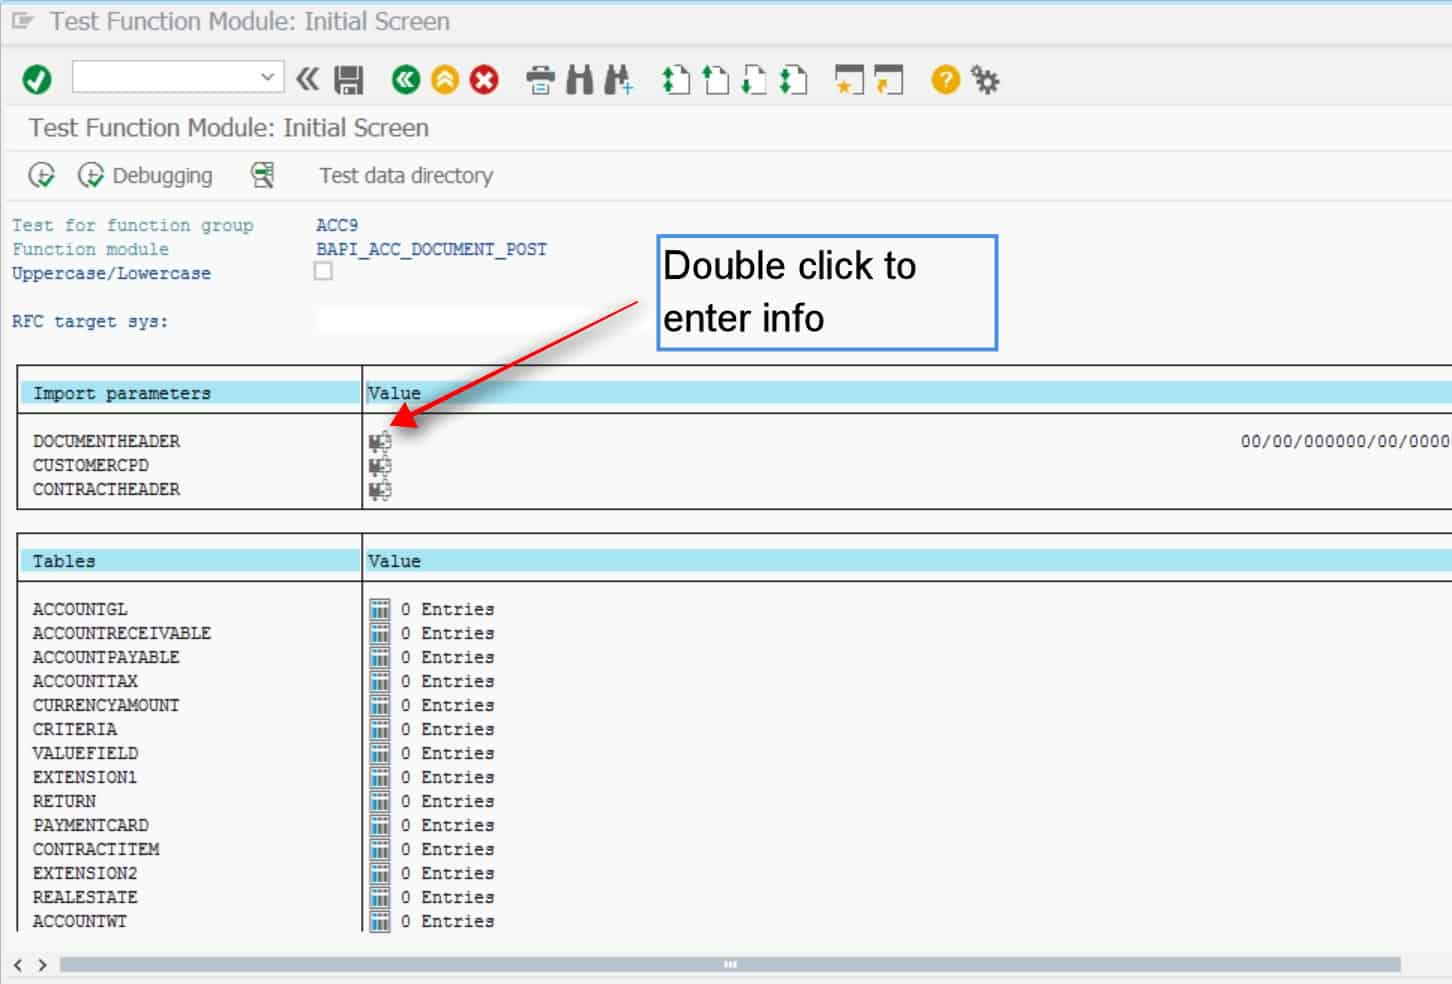 This shows the list of all structures in which you can enter data. The goal here is to enter the same information as what is sent by the interface program. you should first get the data from the program and then enter it in here.  Double click on the import parameters to enter info in there